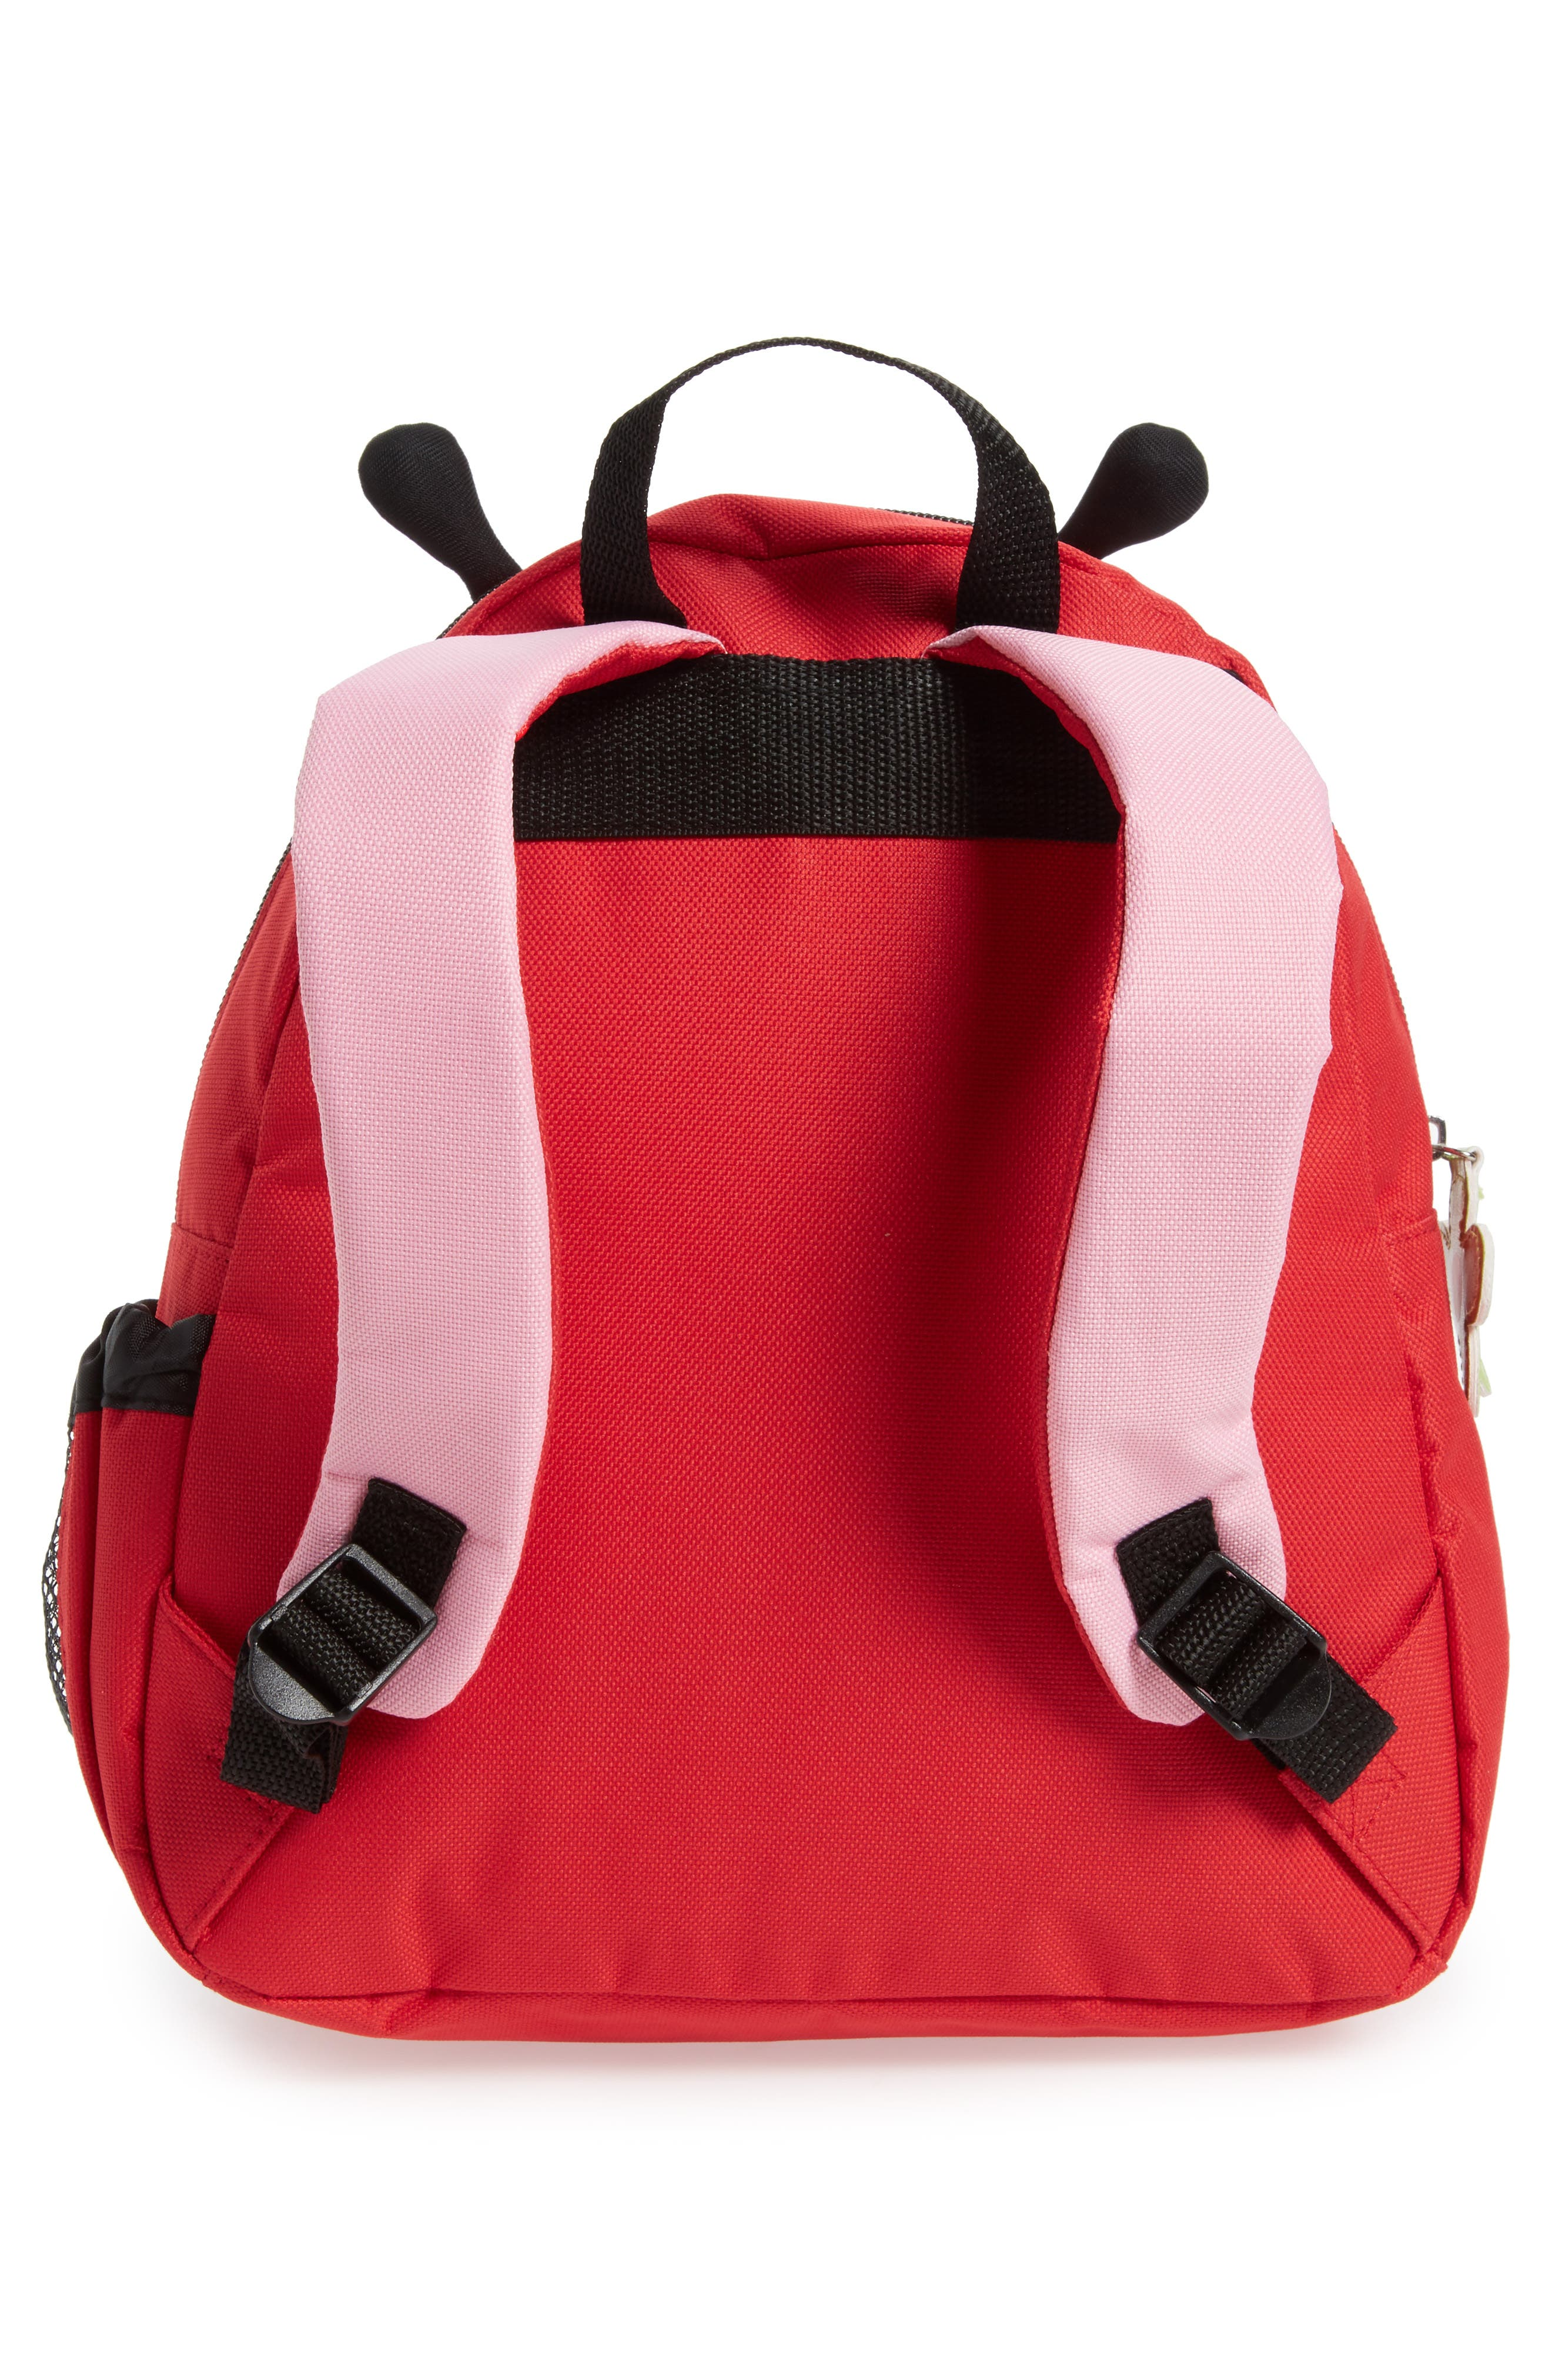 Zoo Pack Backpack,                             Alternate thumbnail 47, color,